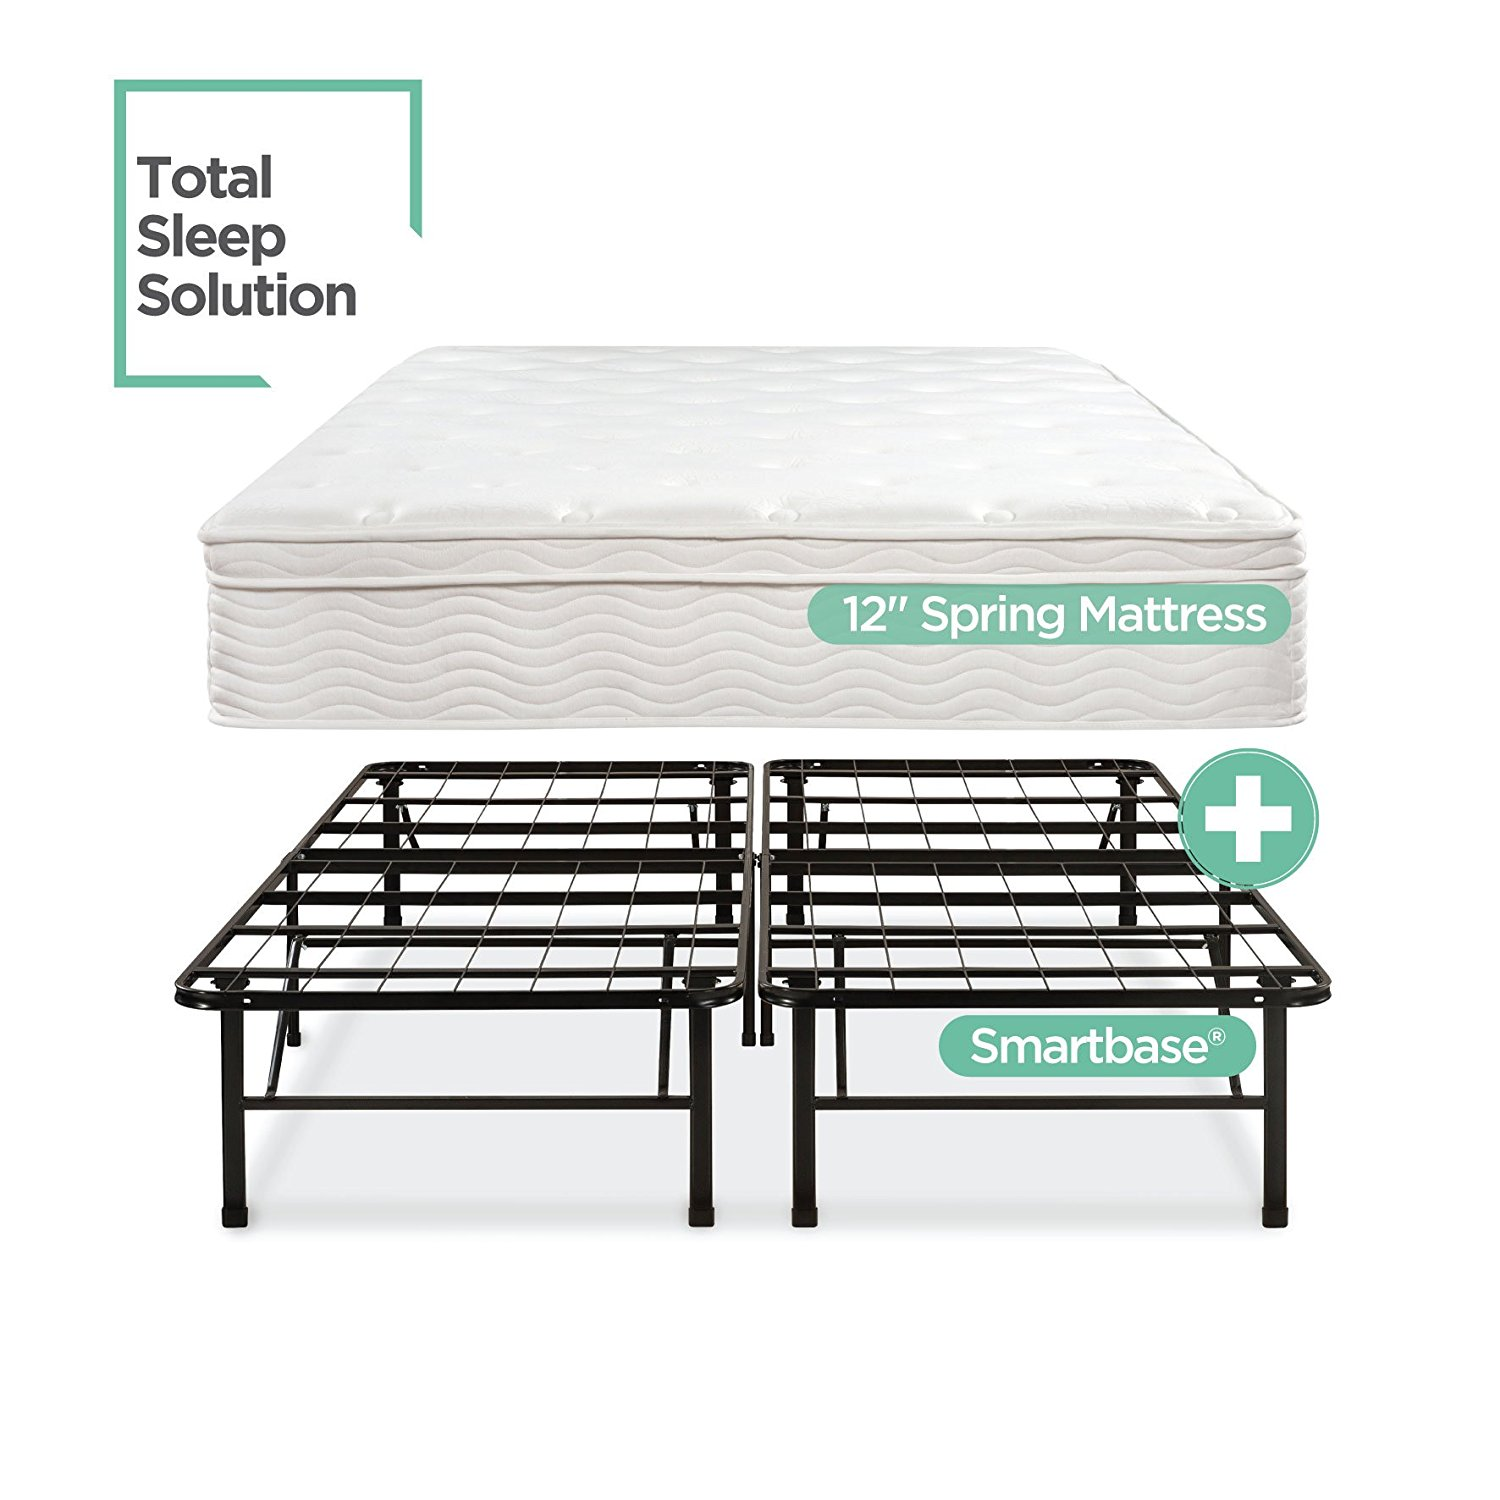 Zinus Night Therapy Spring 12 Inch Euro Box Top Mattress and SmartBase Complete Set